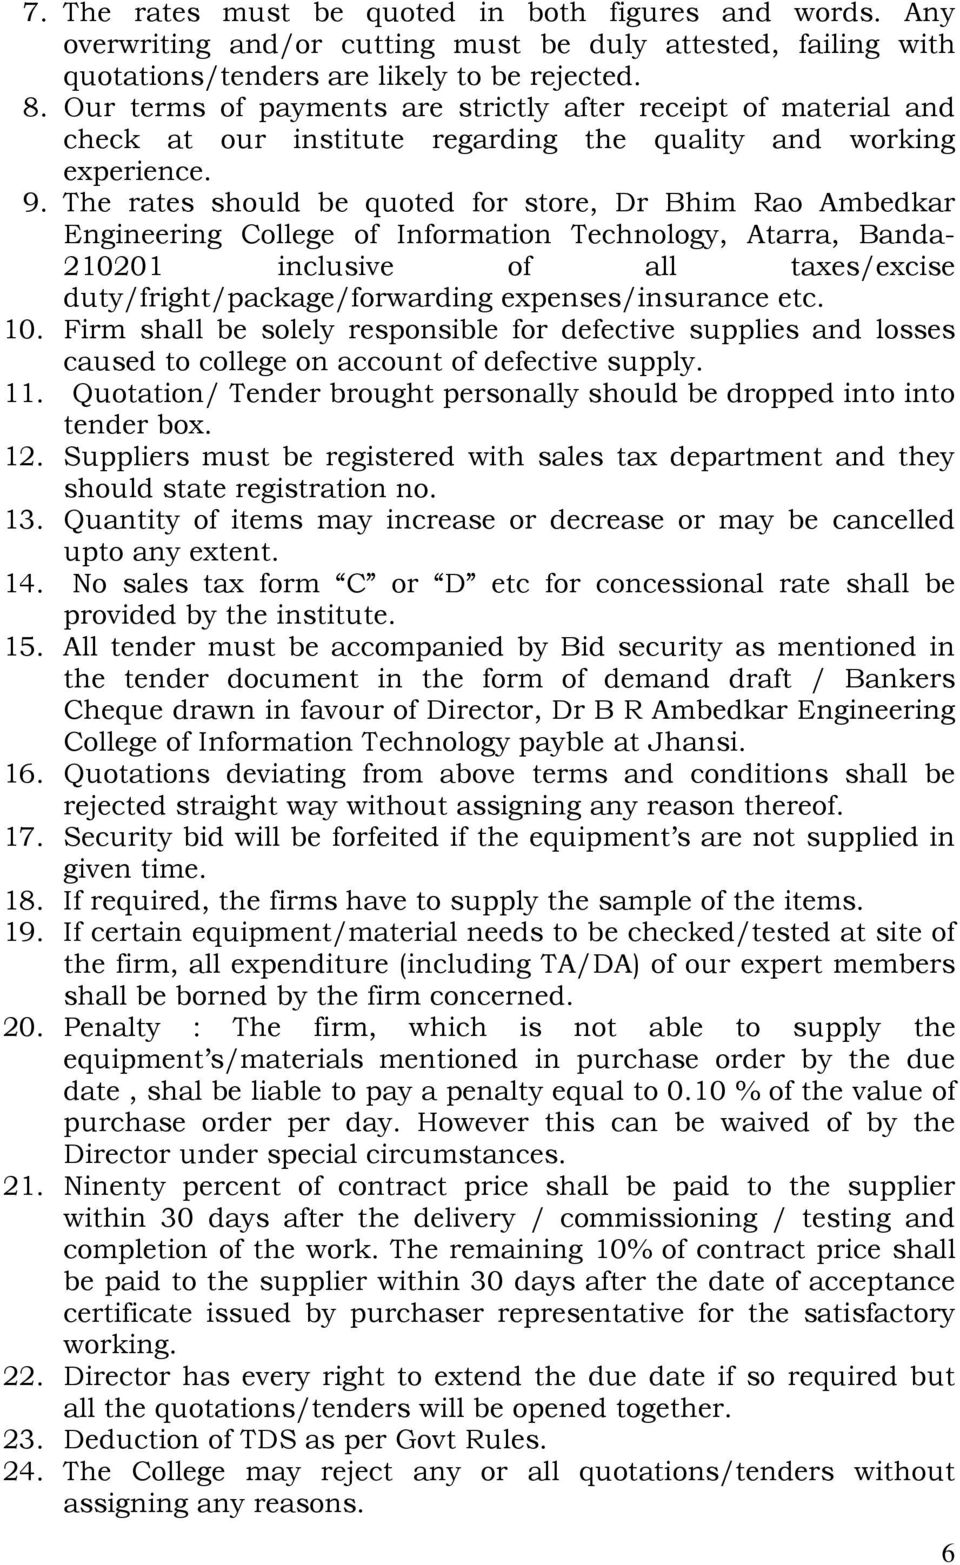 The rates should be quoted for store, Dr Bhim Rao Ambedkar Engineering College of Information Technology, Atarra, Banda- 210201 inclusive of all taxes/excise duty/fright/package/forwarding